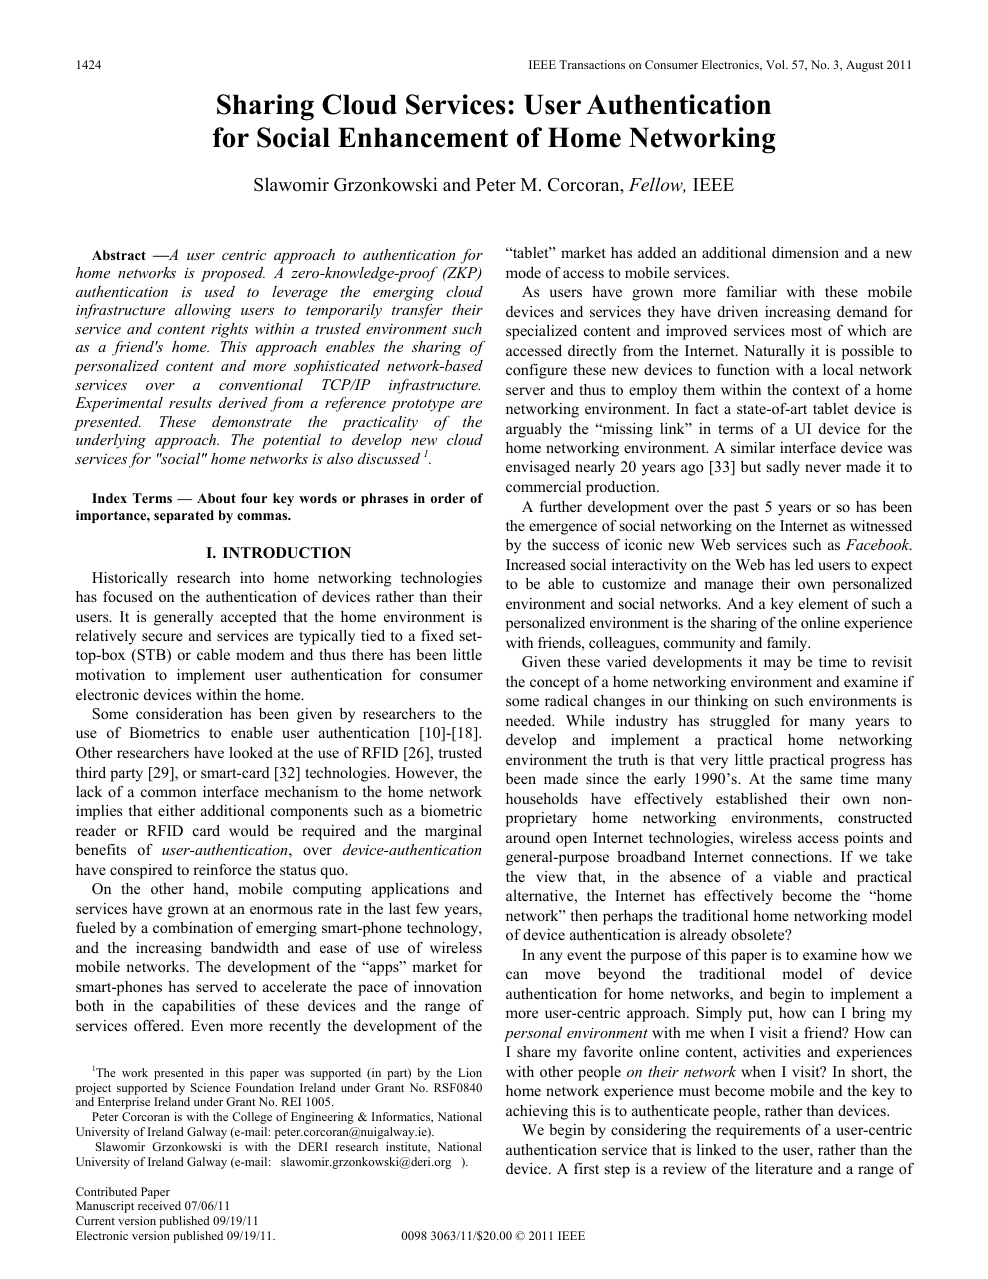 003 Research Paper Free Ieee Papers Computer Unusual Science On In For Full